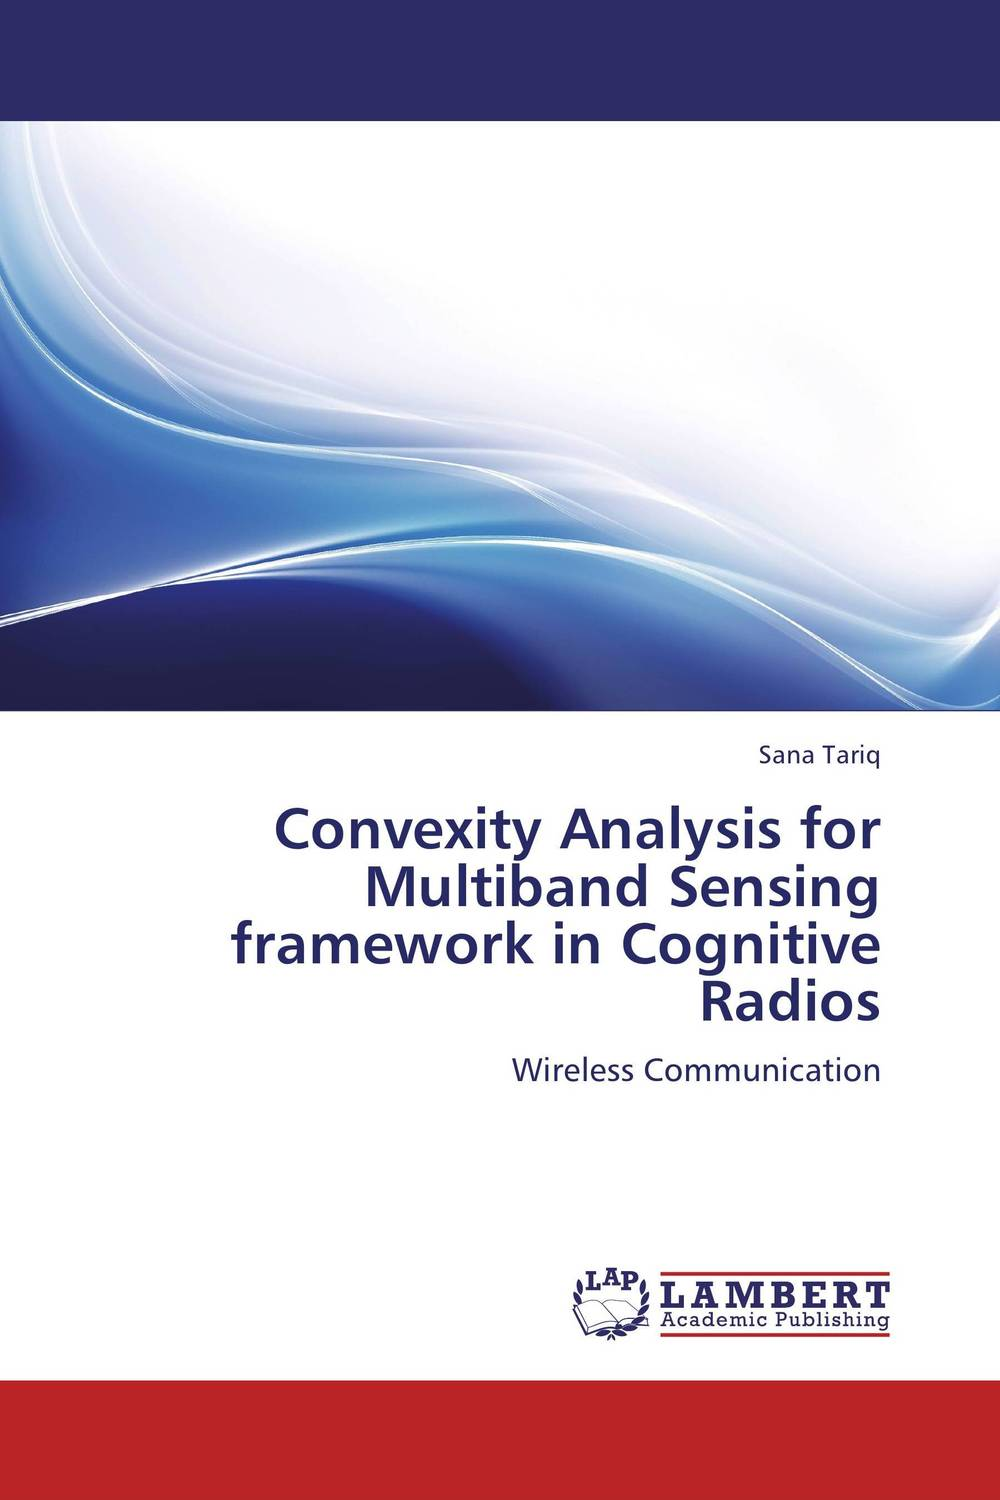 Convexity Analysis for Multiband Sensing framework in Cognitive Radios 100% natural argy wormwood leaf extract powder 200g